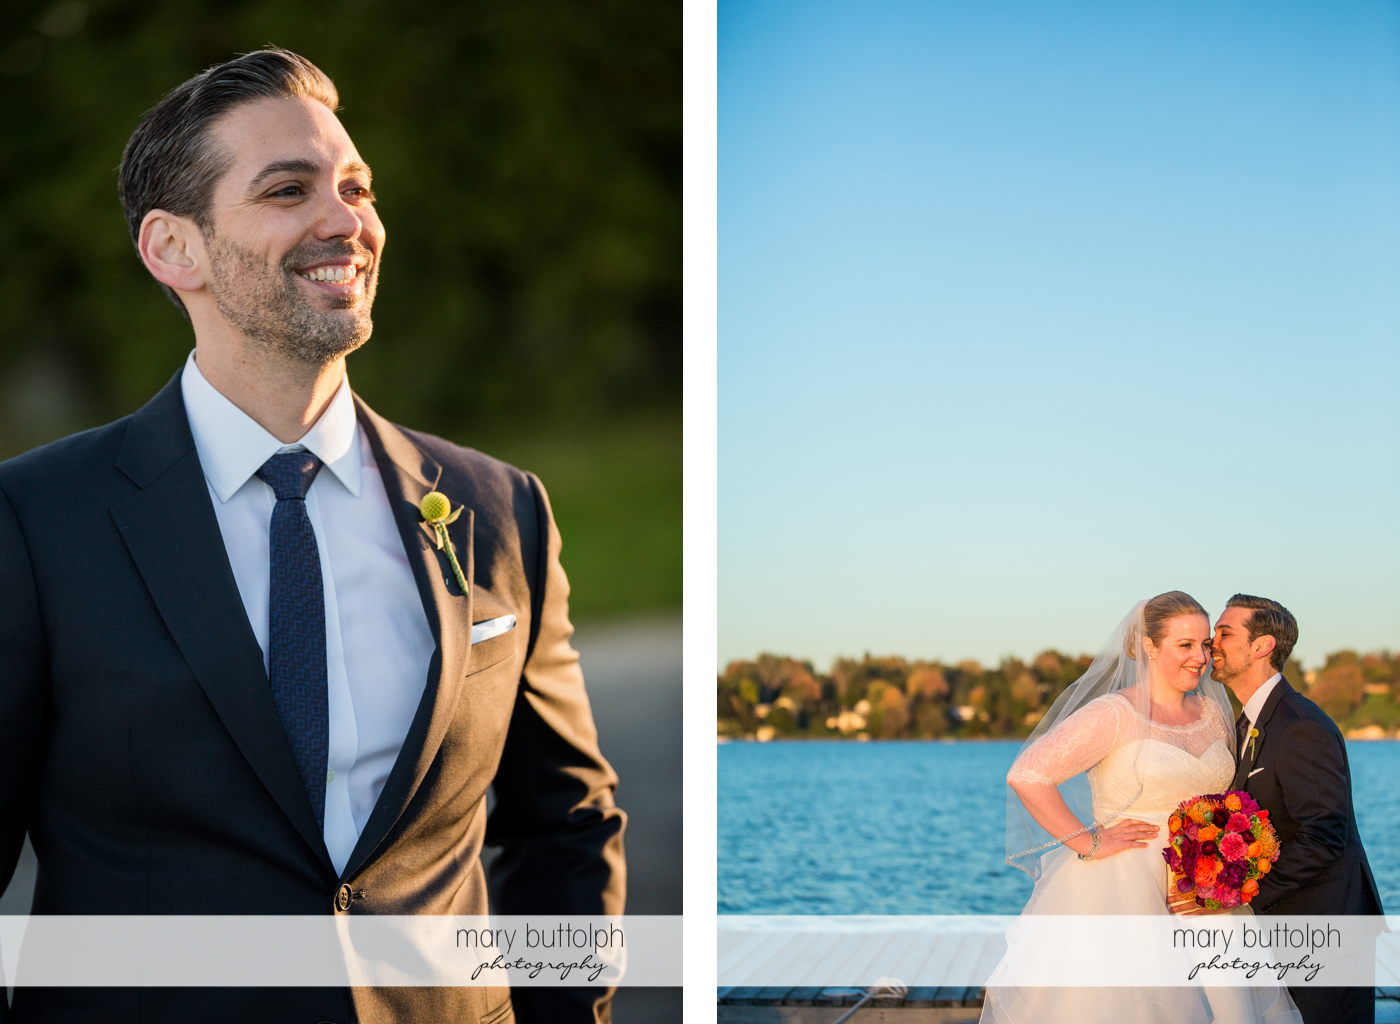 Solo shot of the groom and with the bride near the lake at Skaneateles Country Club Wedding